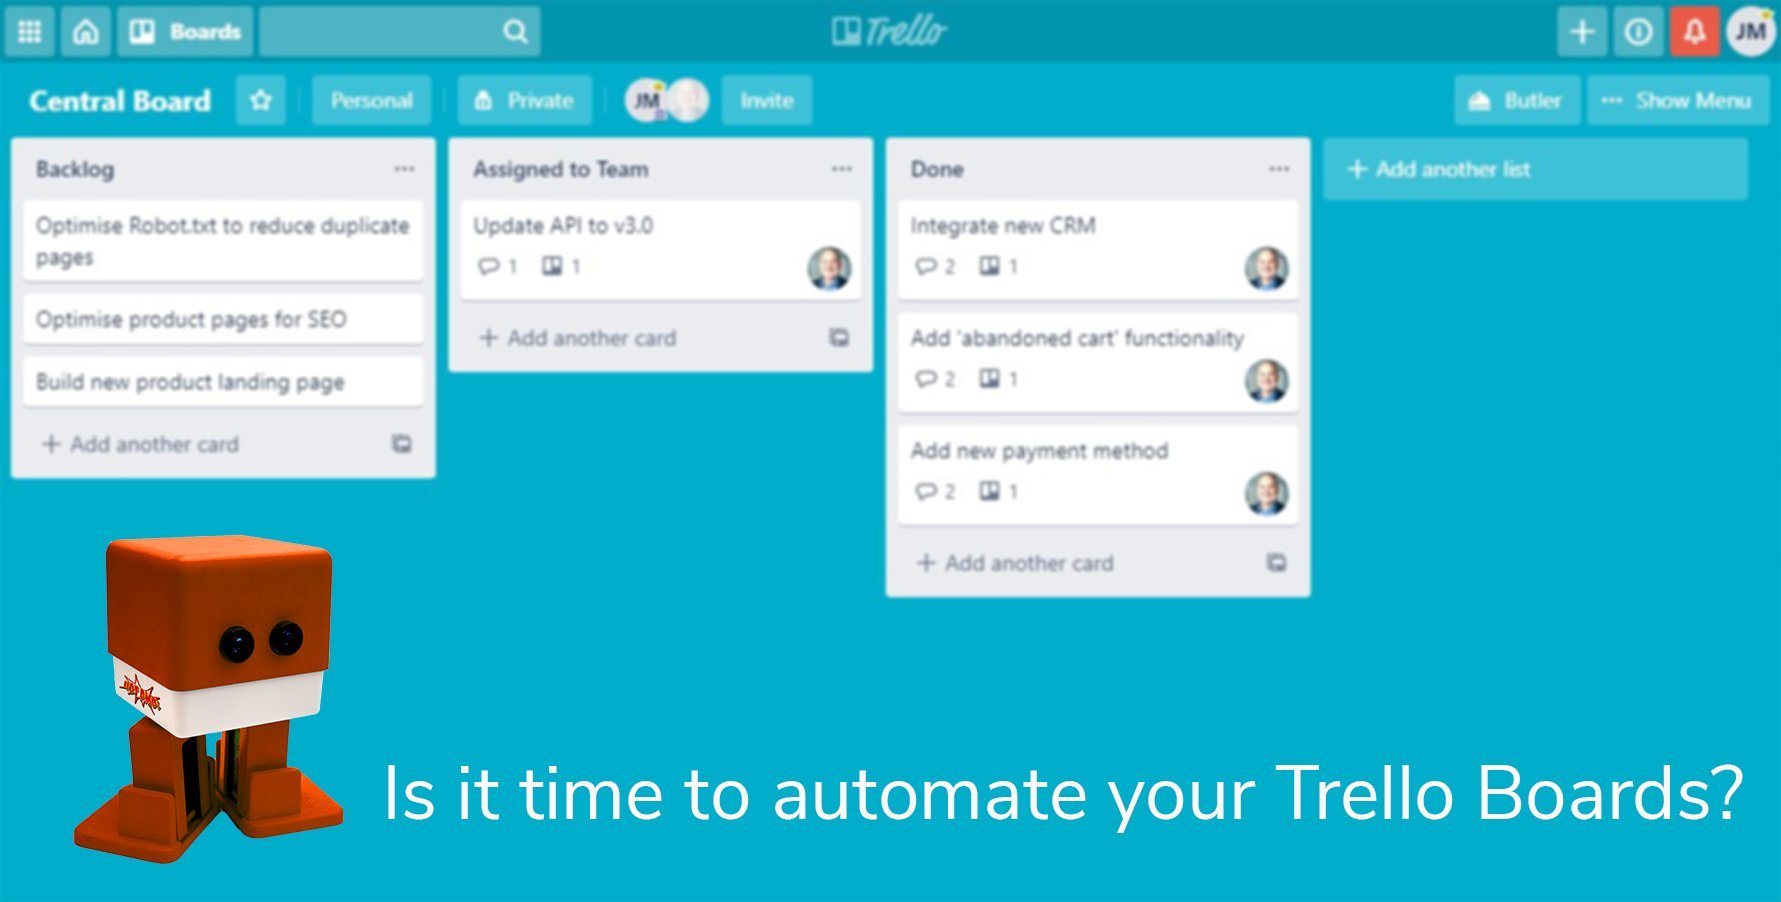 Is it time to automate your Trello Boards?